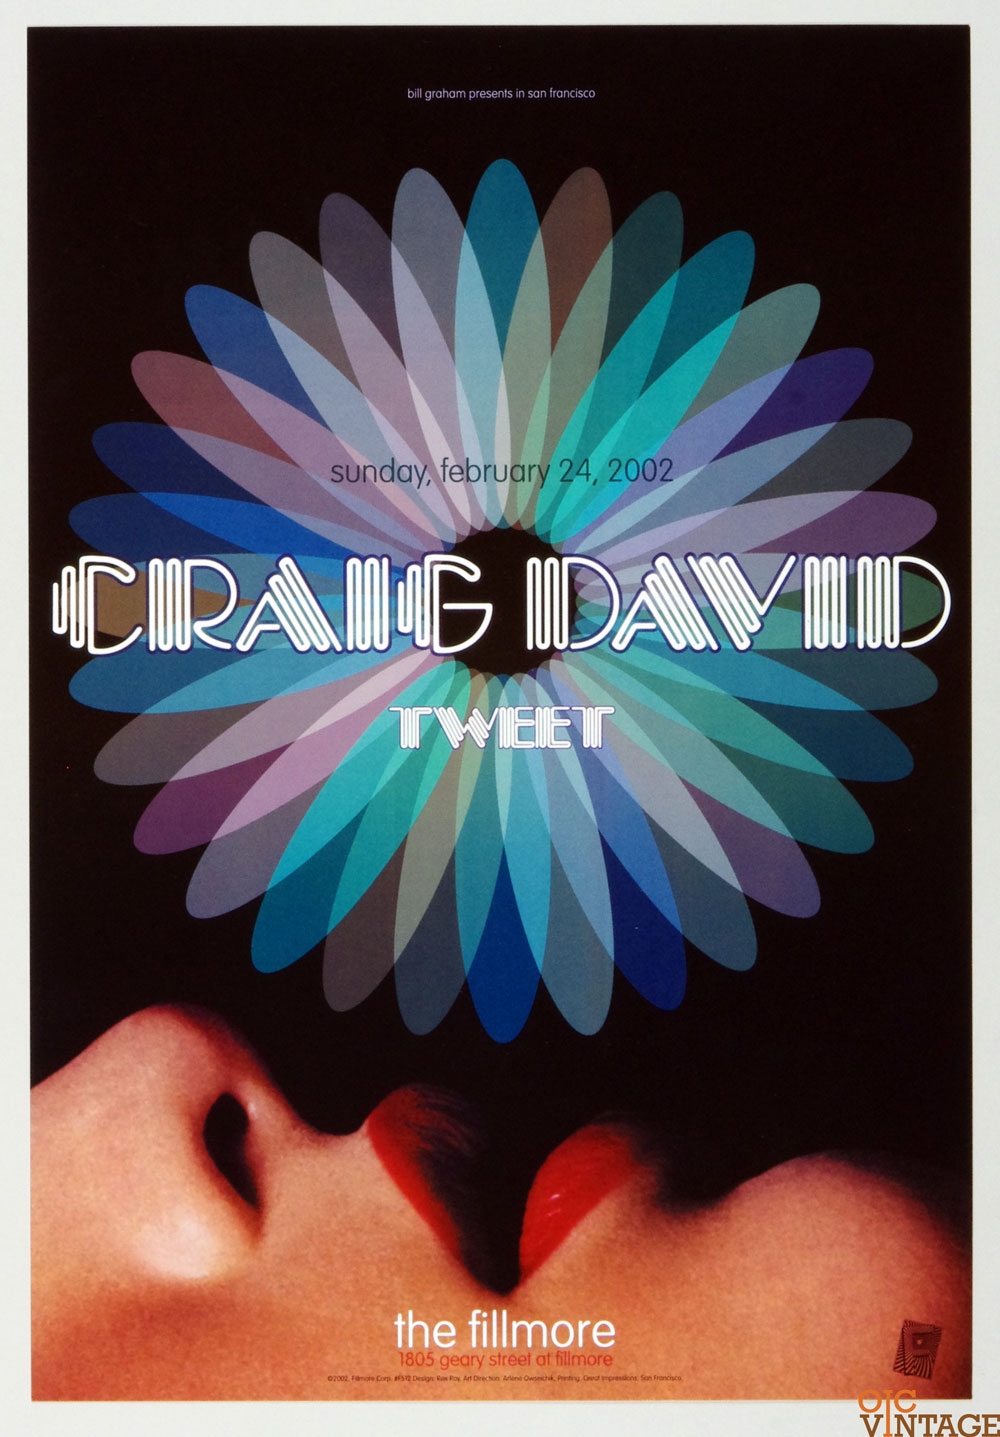 Craig David Tweet Poster 2002 Feb 24 New Fillmore